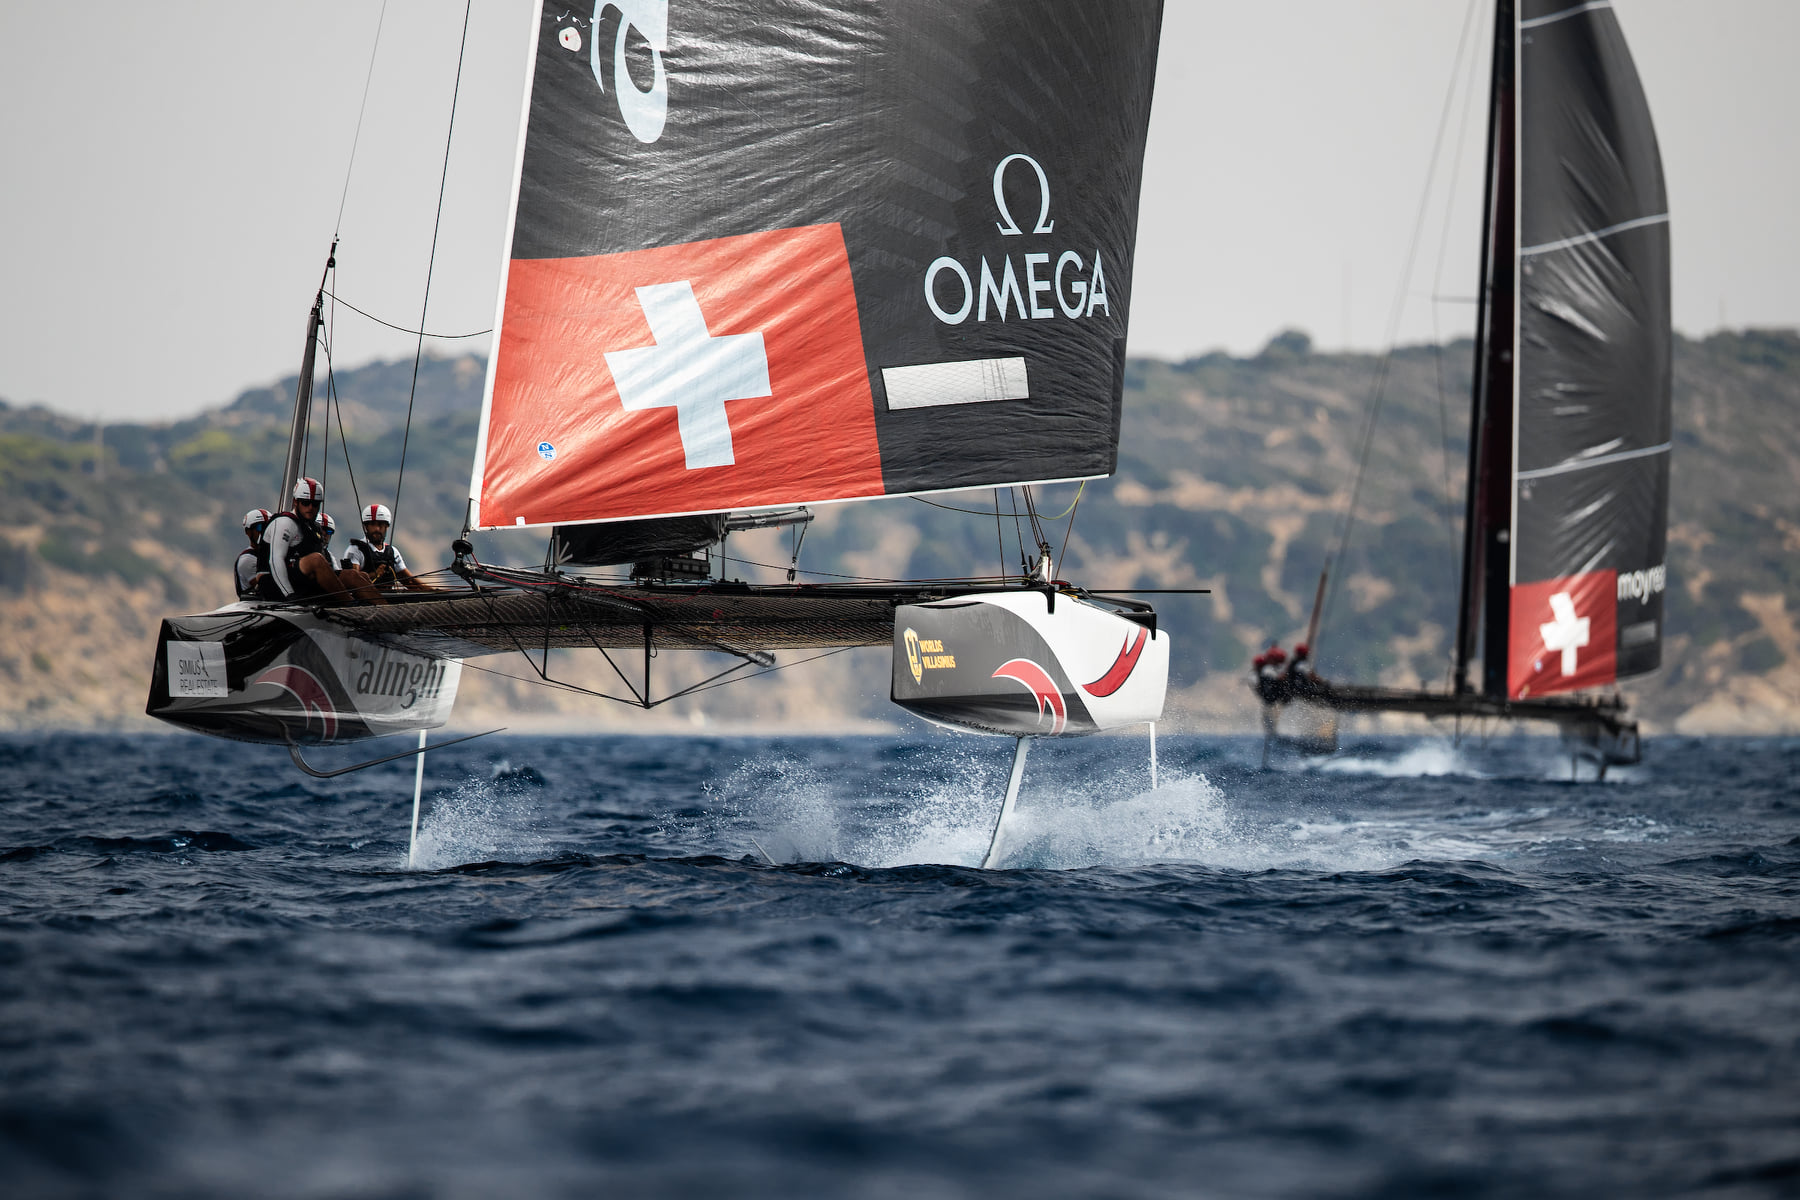 Two catamarans foiling downwind.